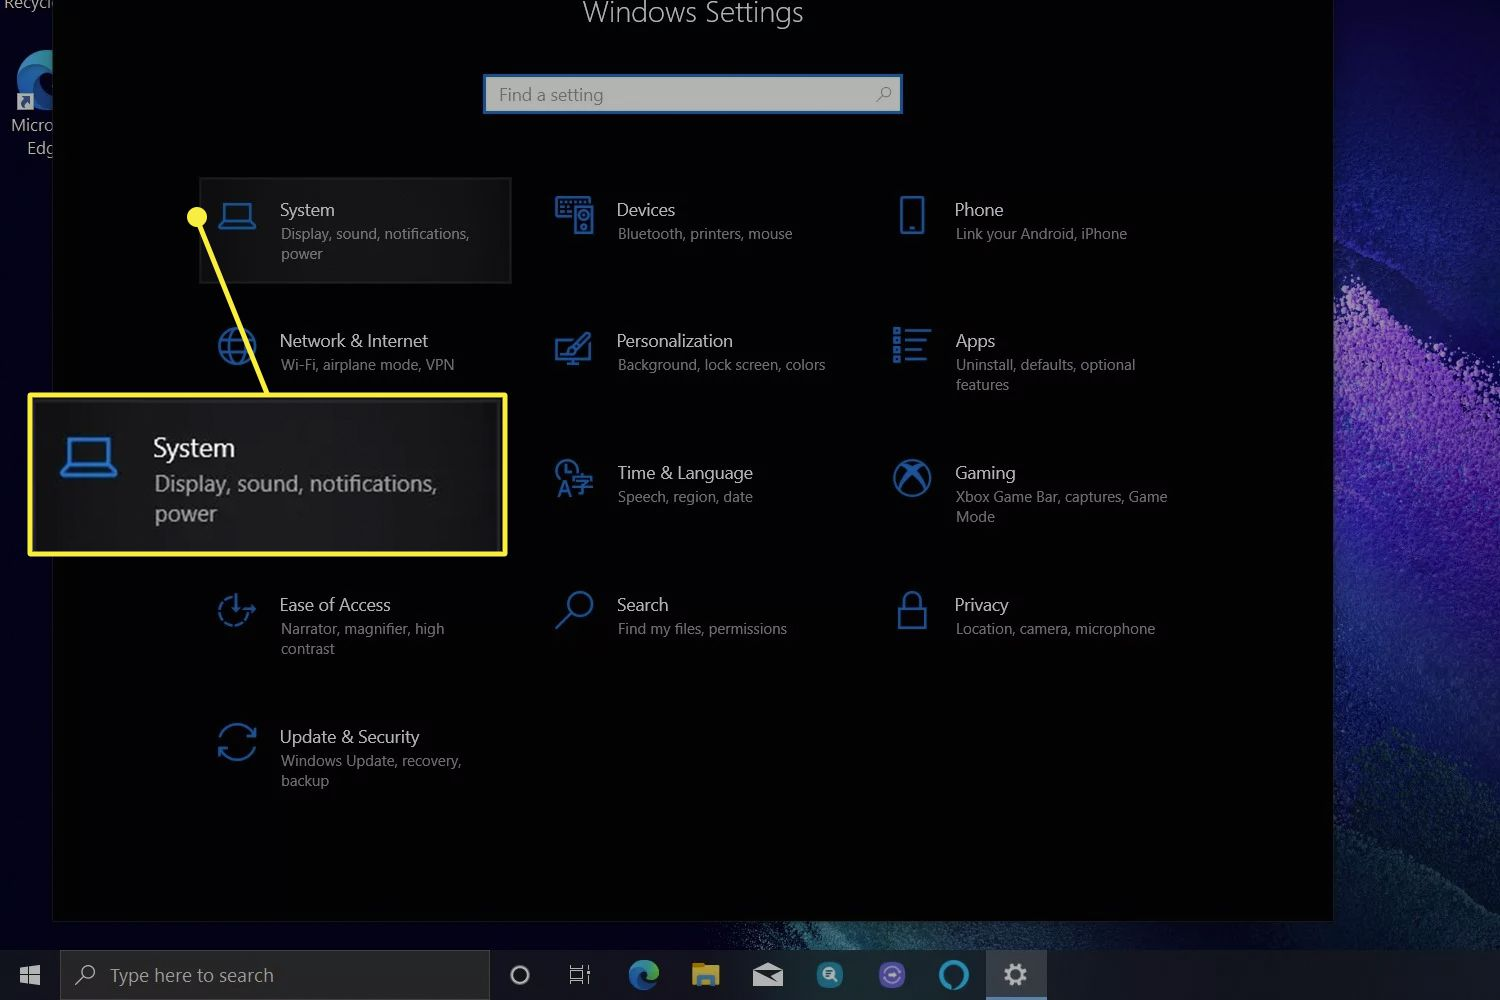 The Windows 10 Settings menu with System highlighted.